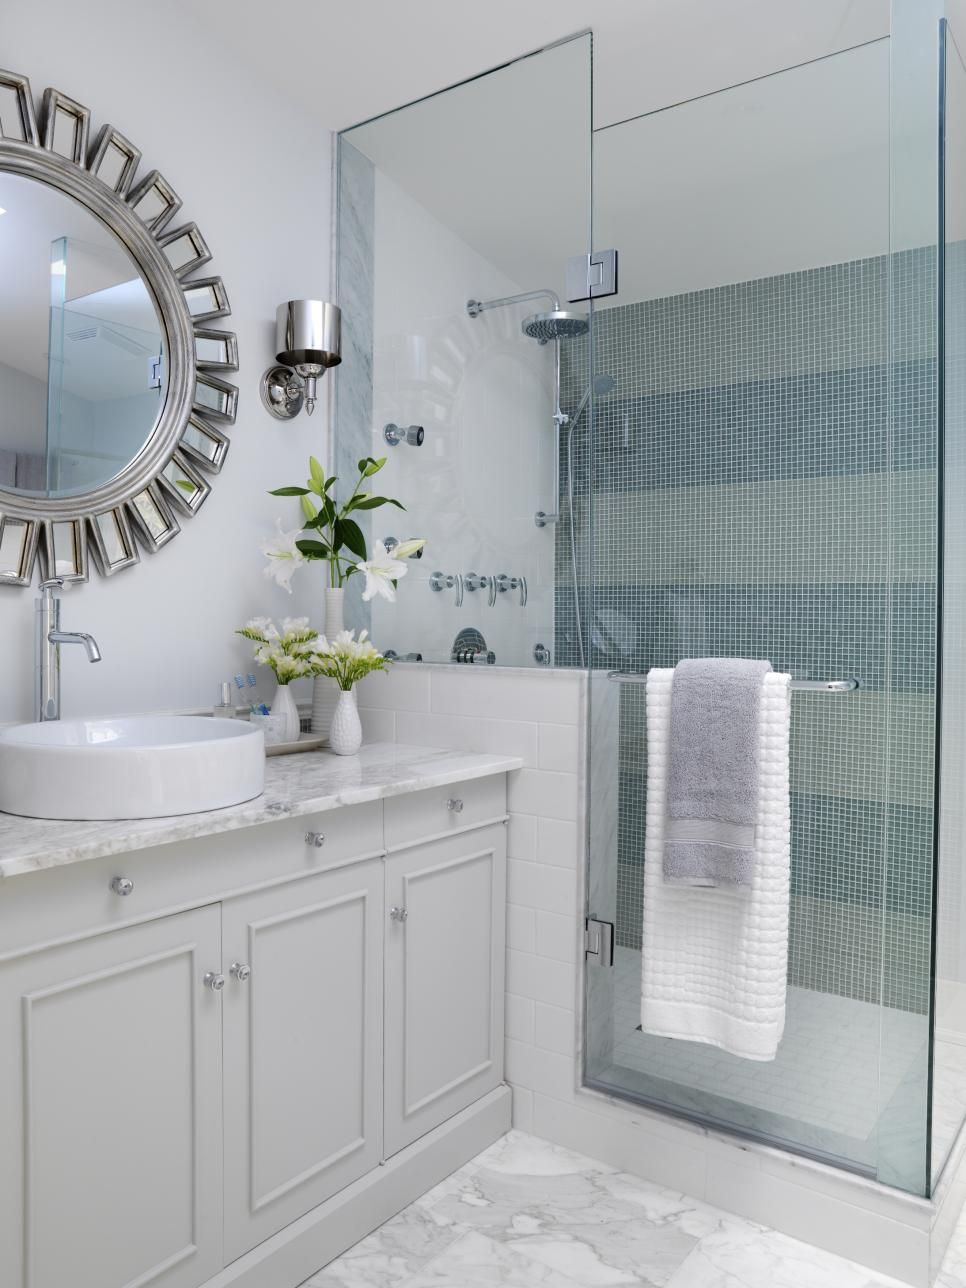 add a graphic punch in 15 simply chic bathroom tile design ideas from hgtv